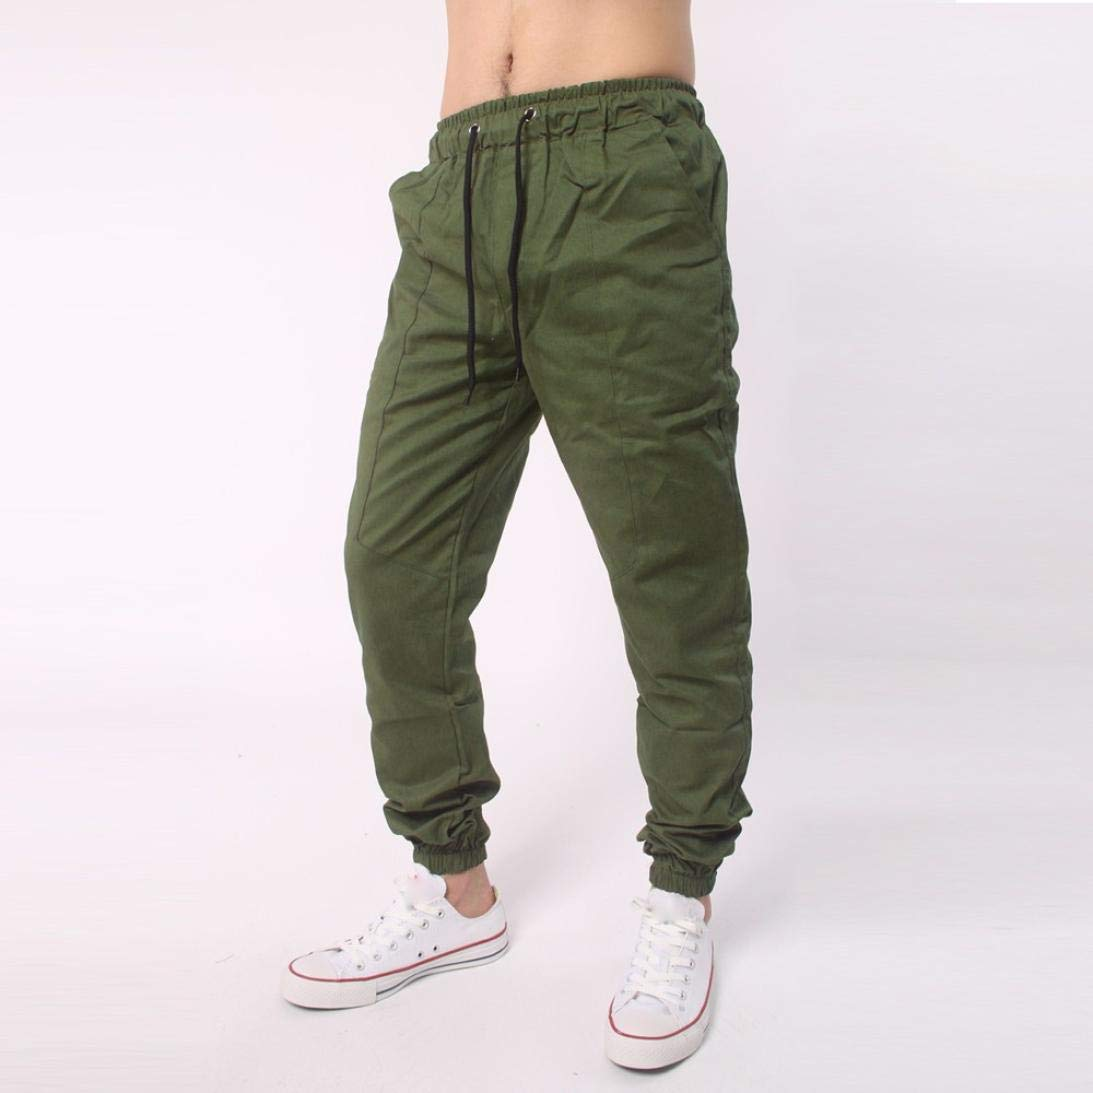 Realdo Clearance, Men Casual Slack Solid Harem Sweatpants Jogger Pant Sportwear Baggy Comfy (XX-Large,Army Green) by Realdo (Image #2)